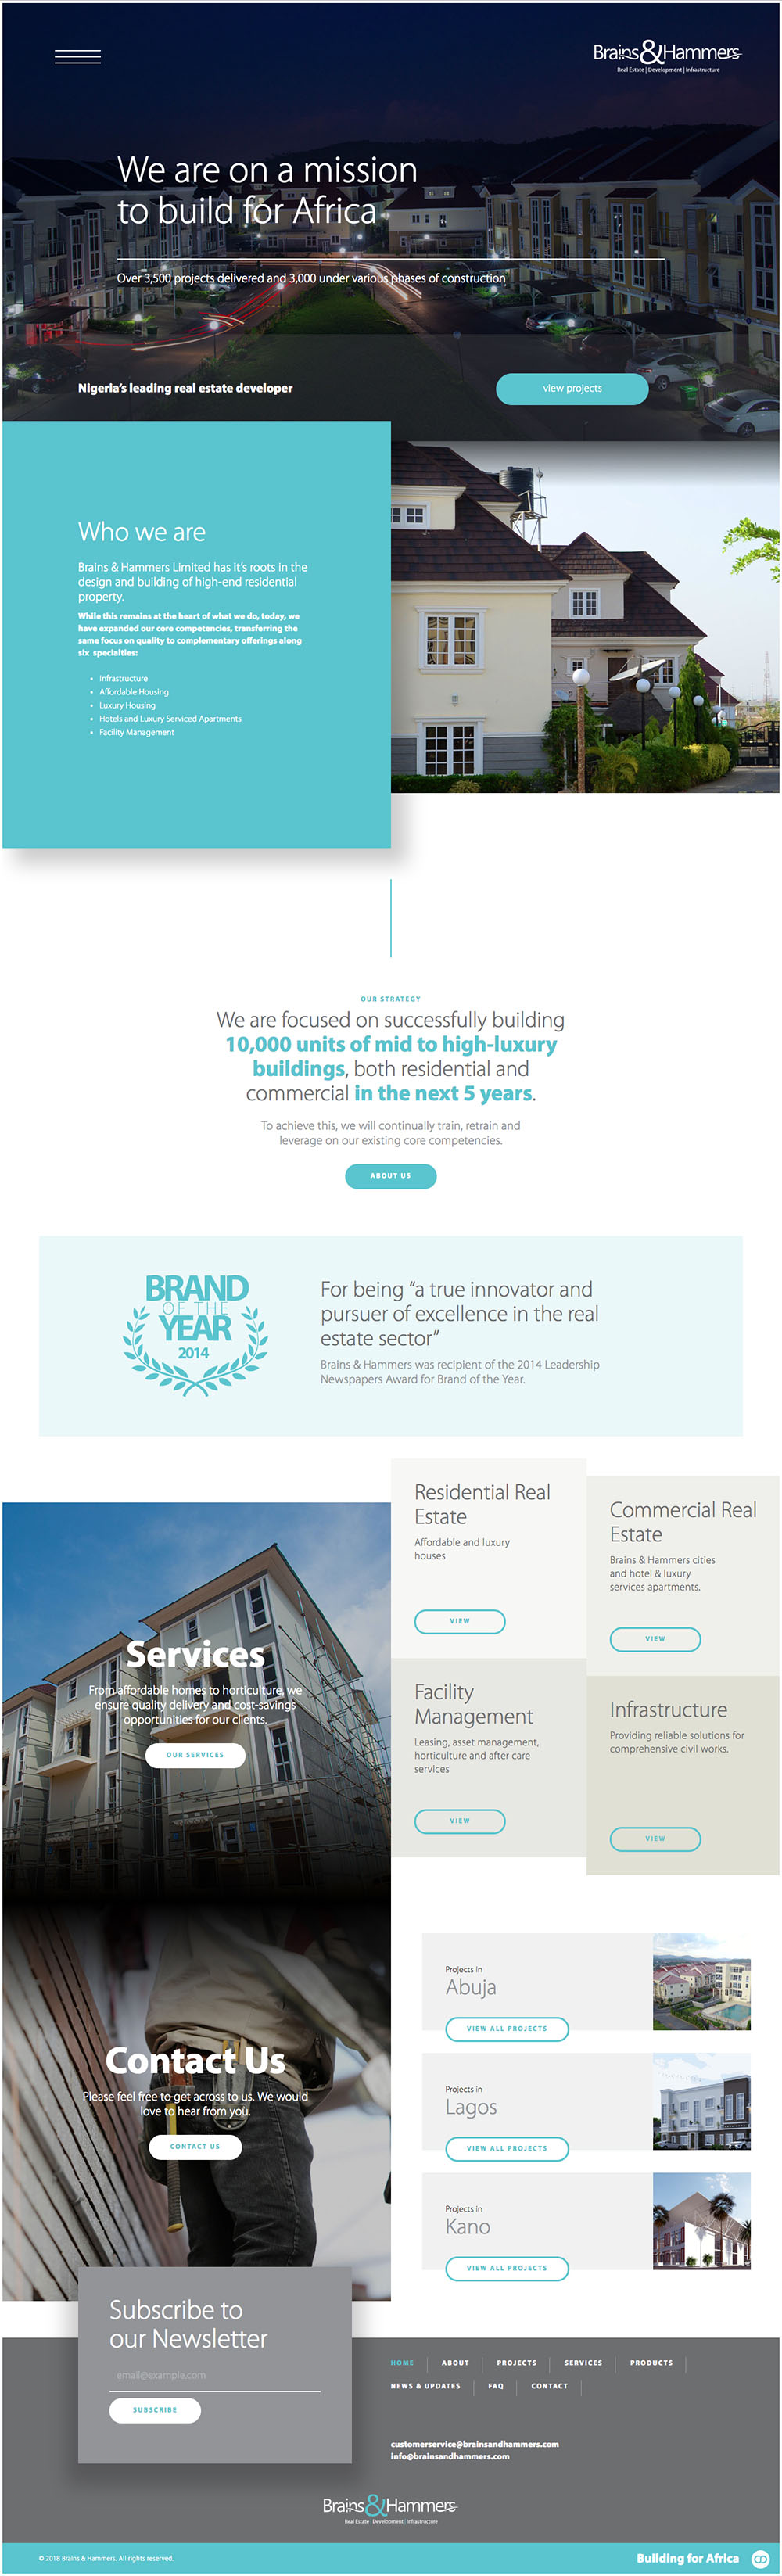 Brains & Hammers Website Preview - Designed by Check DC